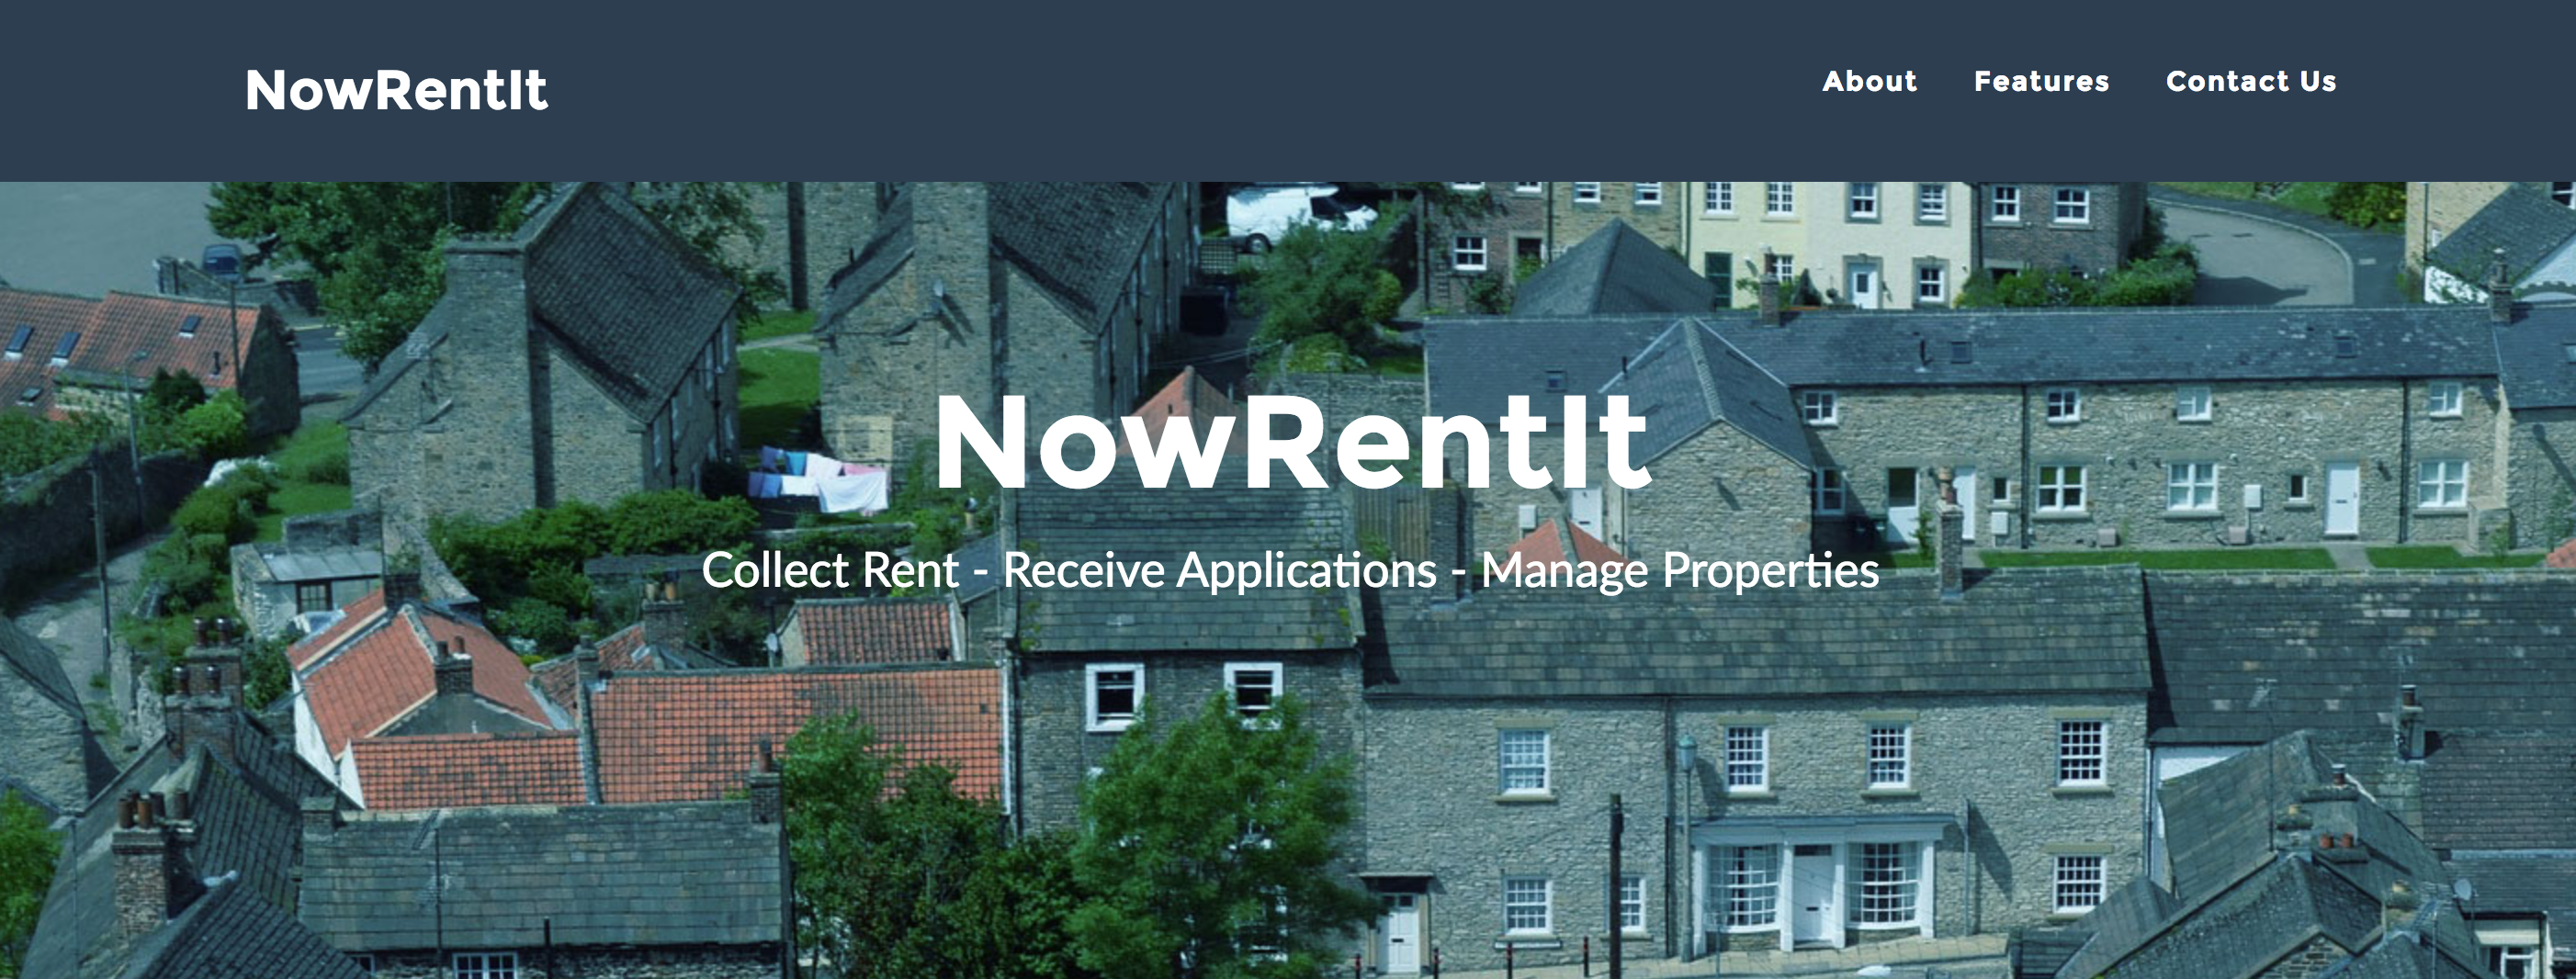 NowRentIt homepage design: collect rent, receive applications, manage properties